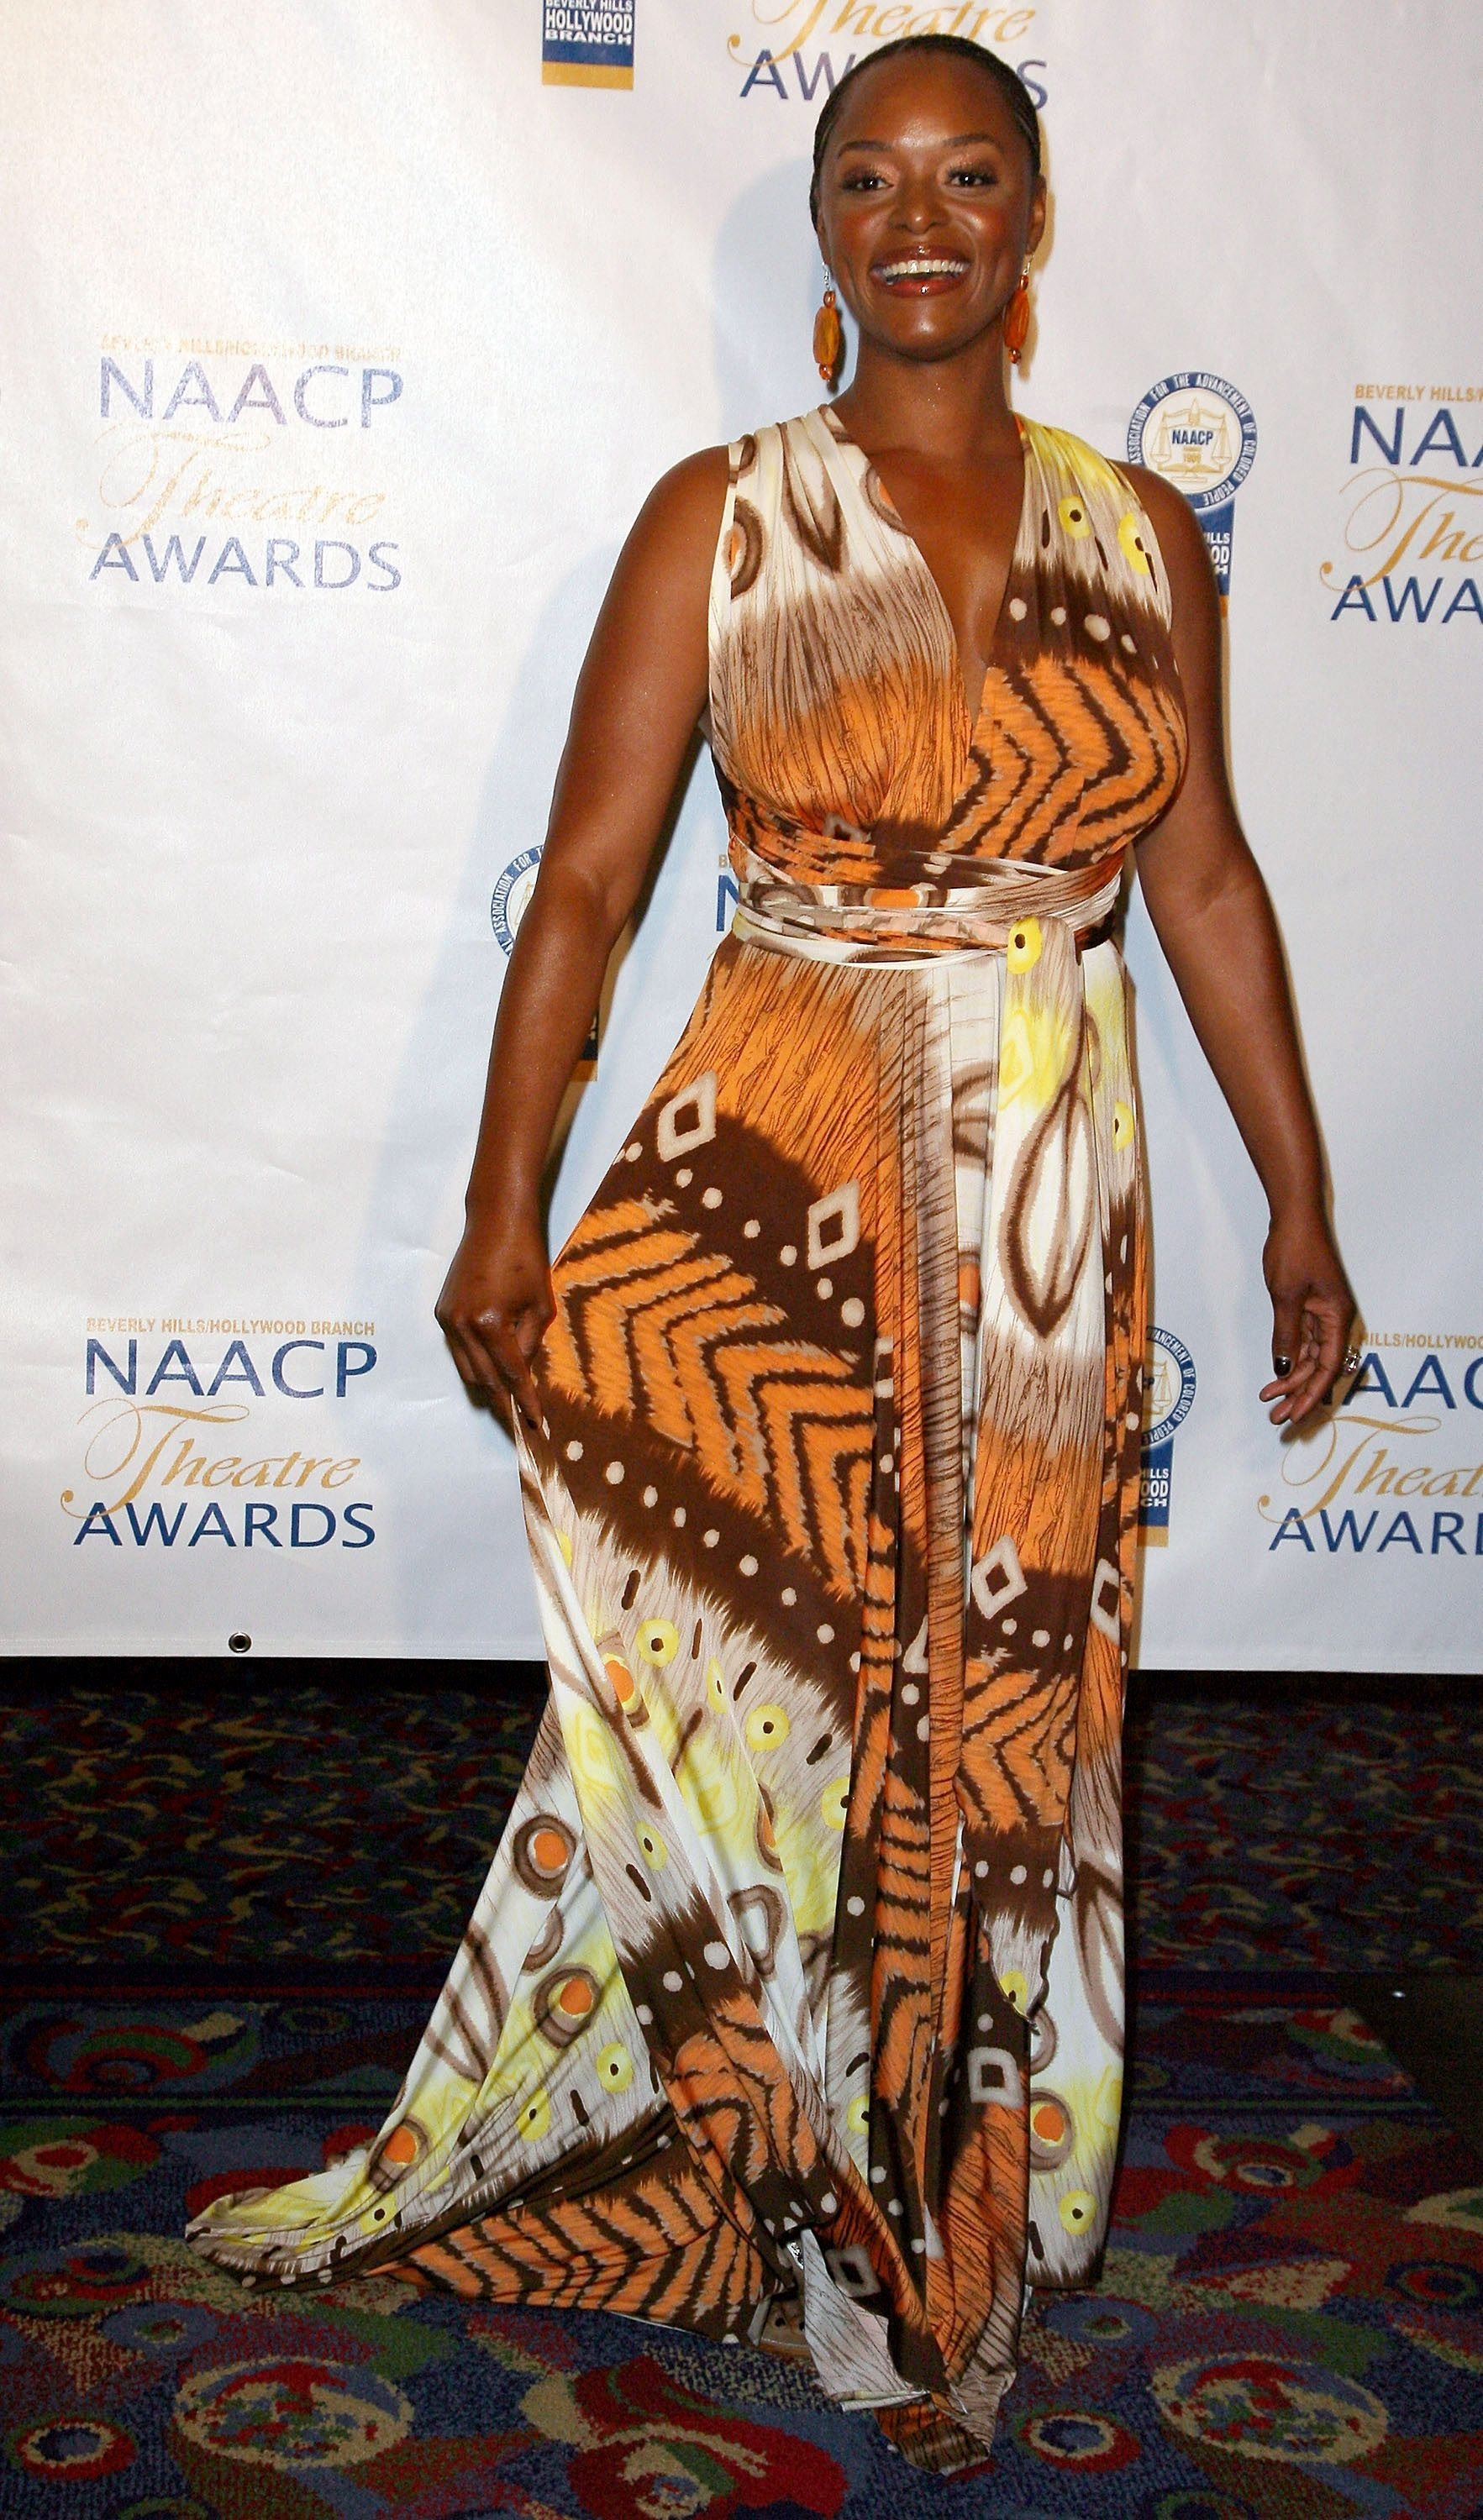 Actress N'Bushe Wright attends the 18th Annual NAACP Theatre Awards at the Renaissance Hotel on June 30, 2008 in Los Angeles, California. | Source: Getty Images